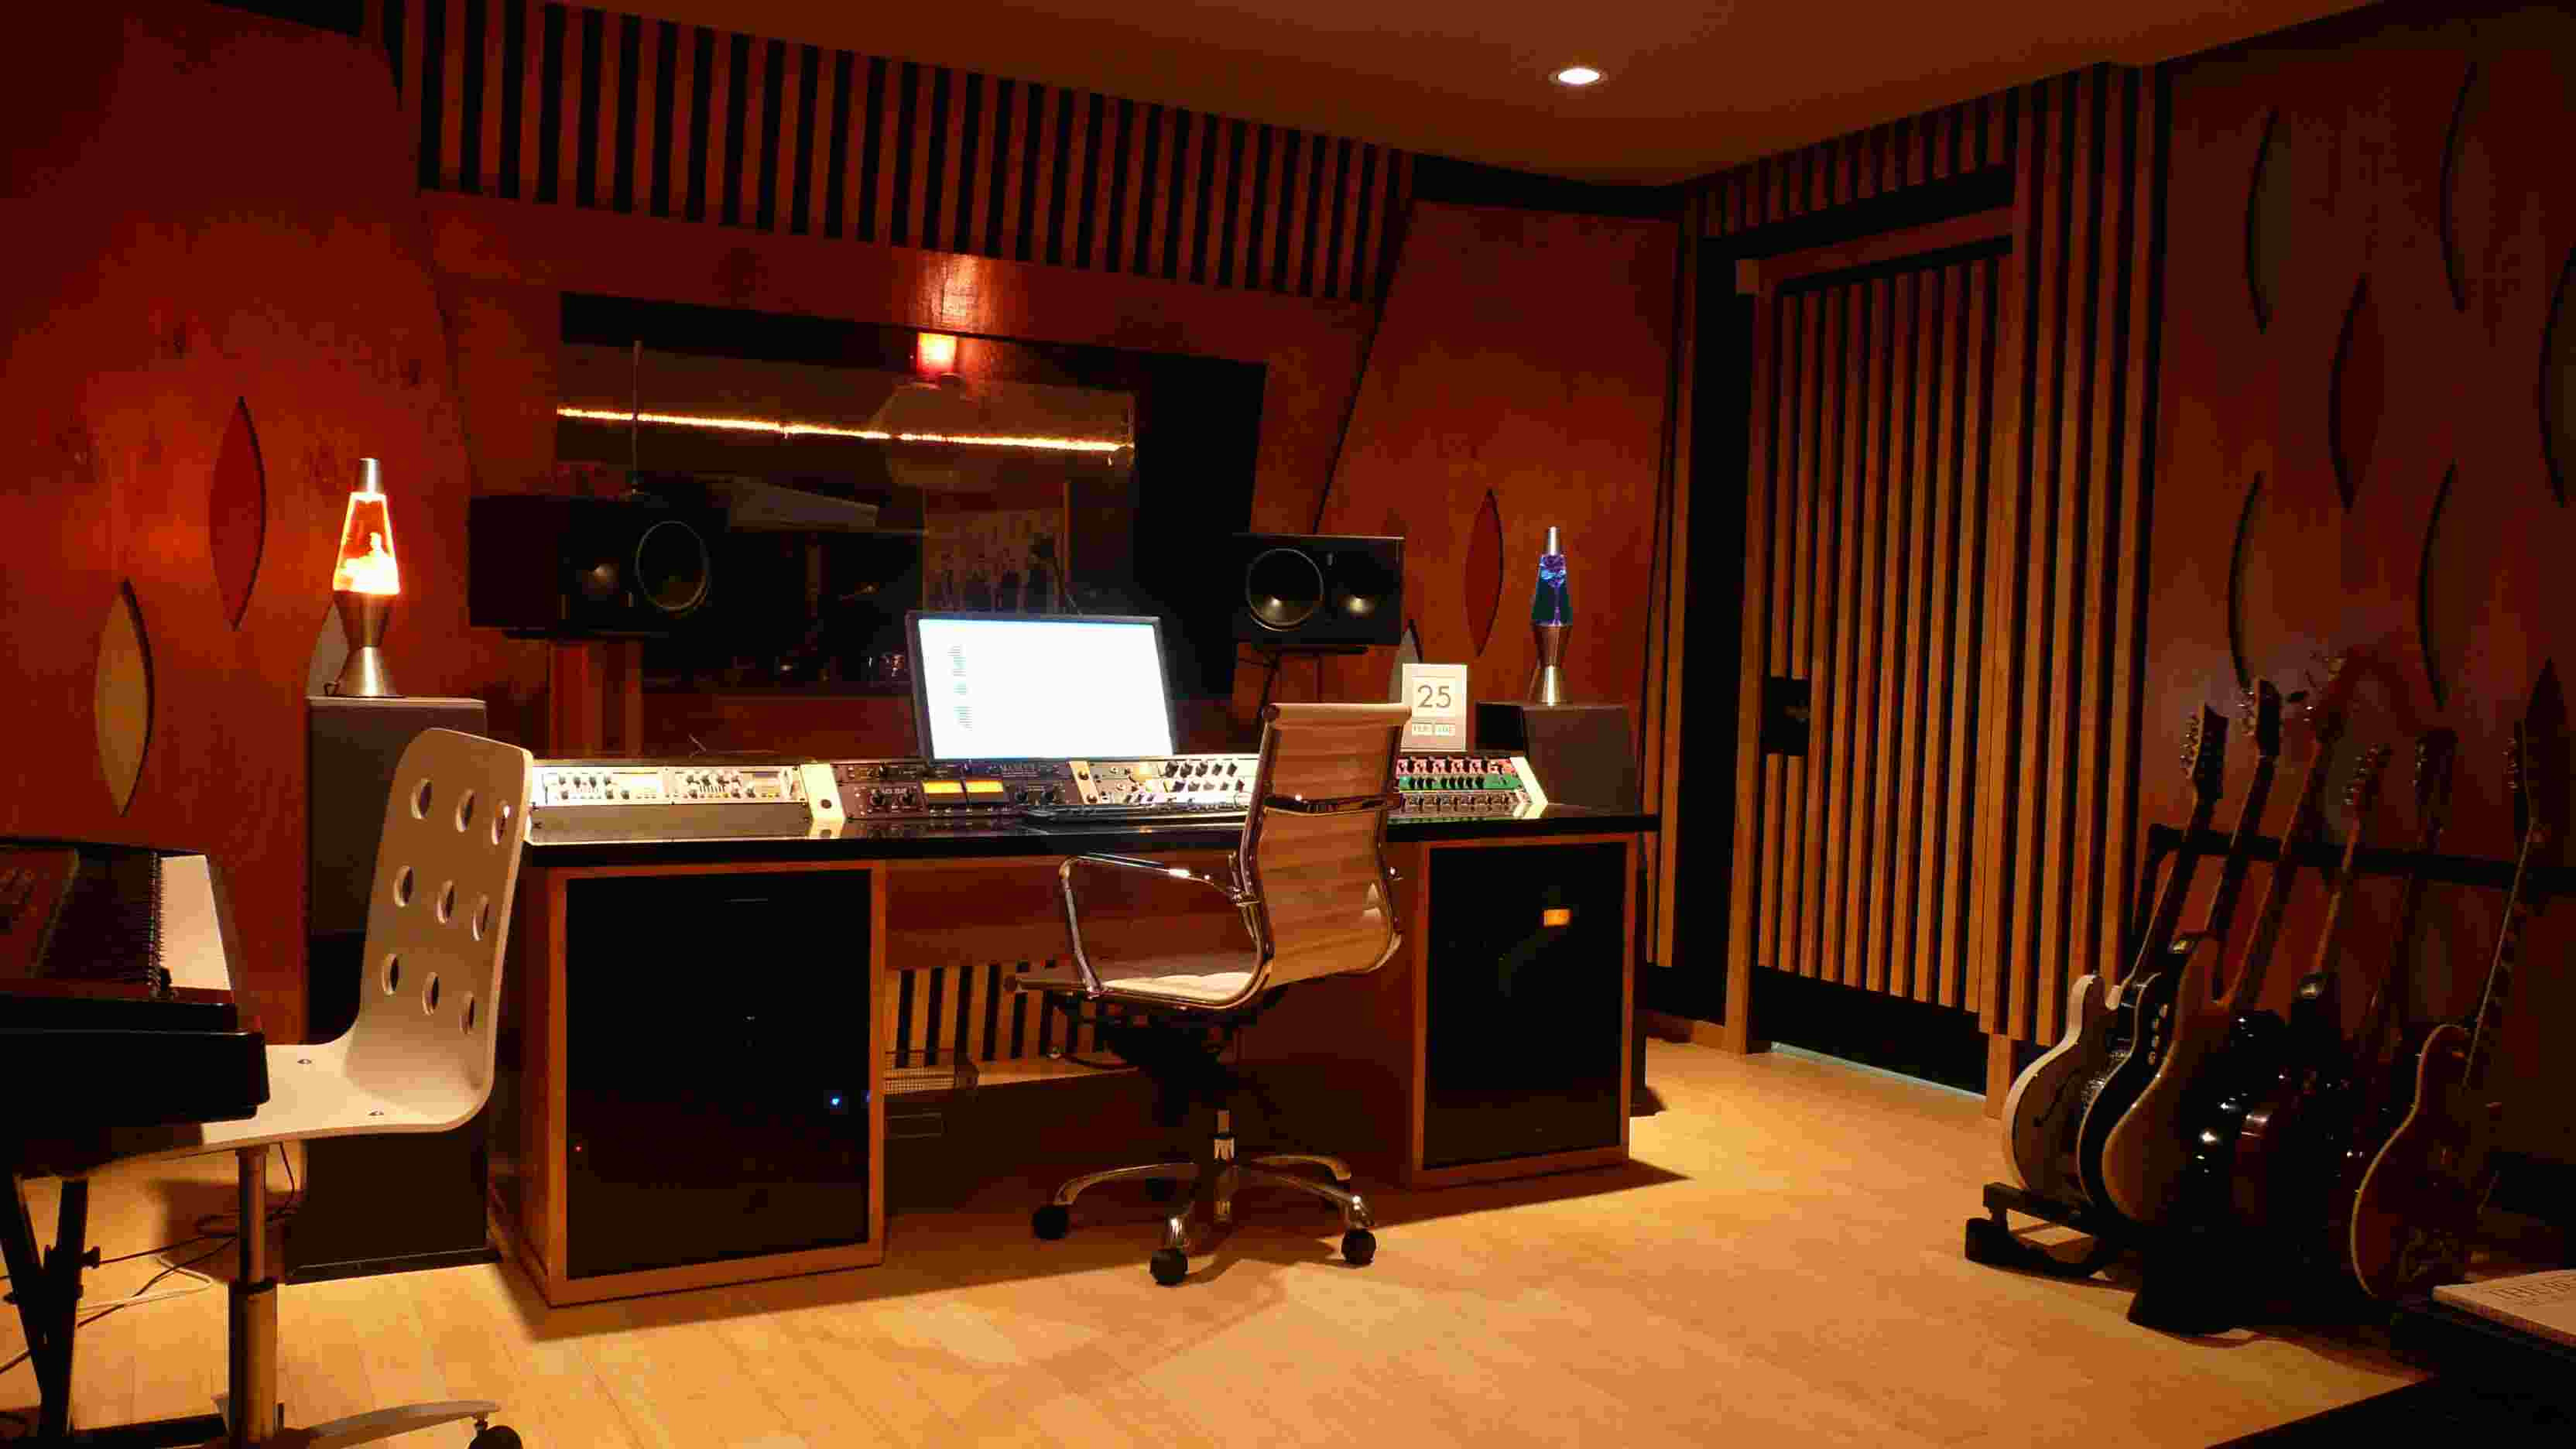 Lighting in a musical studio | Minimalisti.